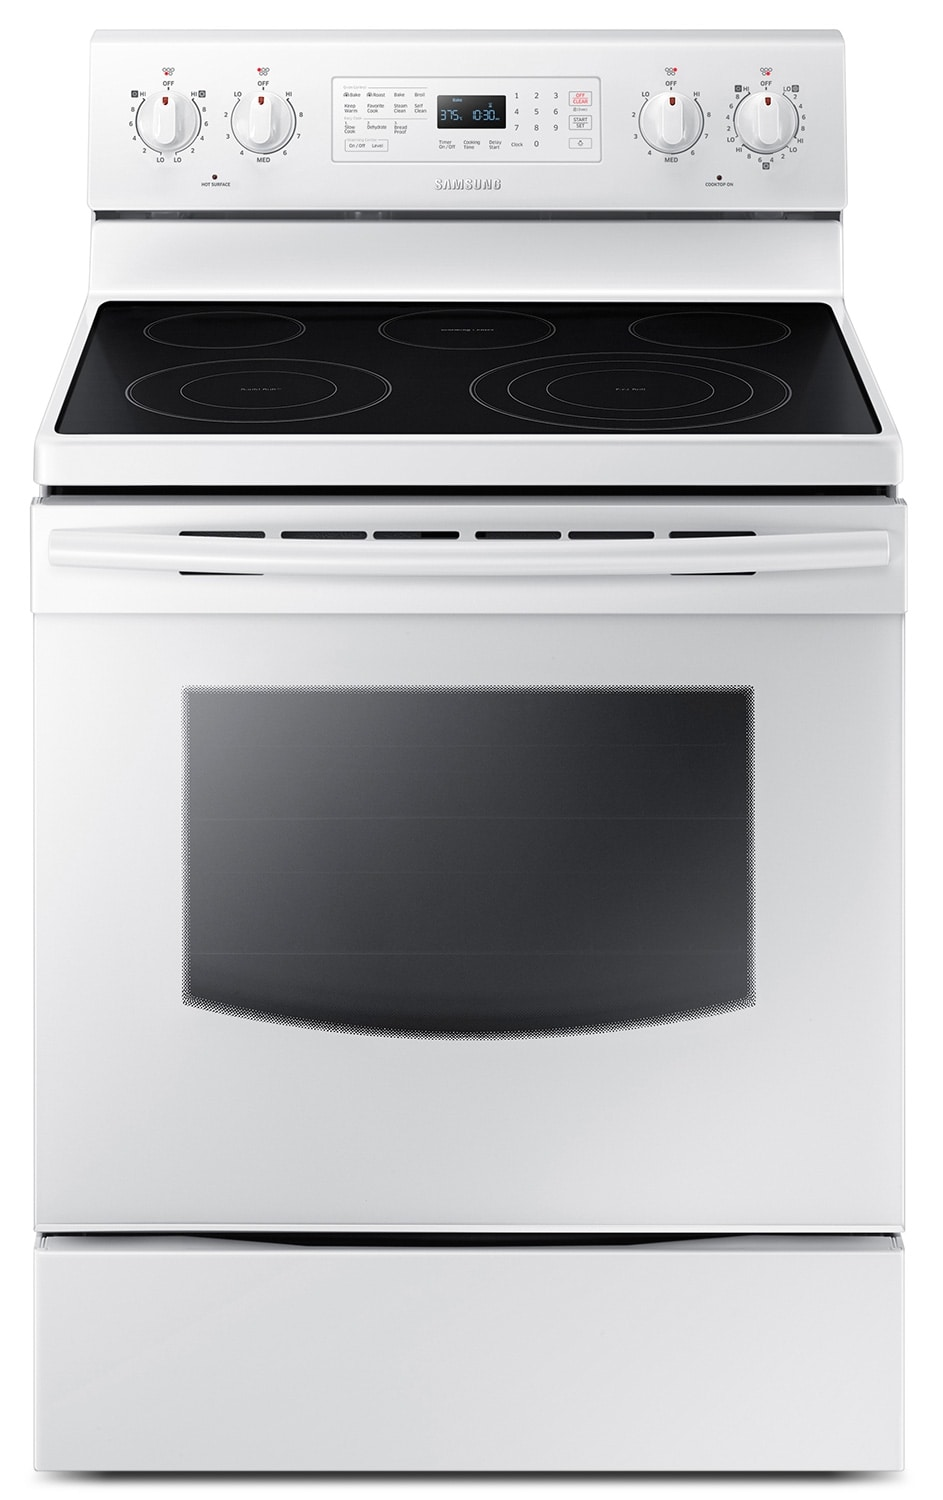 Cooking Products - Samsung White Freestanding Electric Convection Range (5.9 Cu. Ft.) - NE59J3420SW/AC